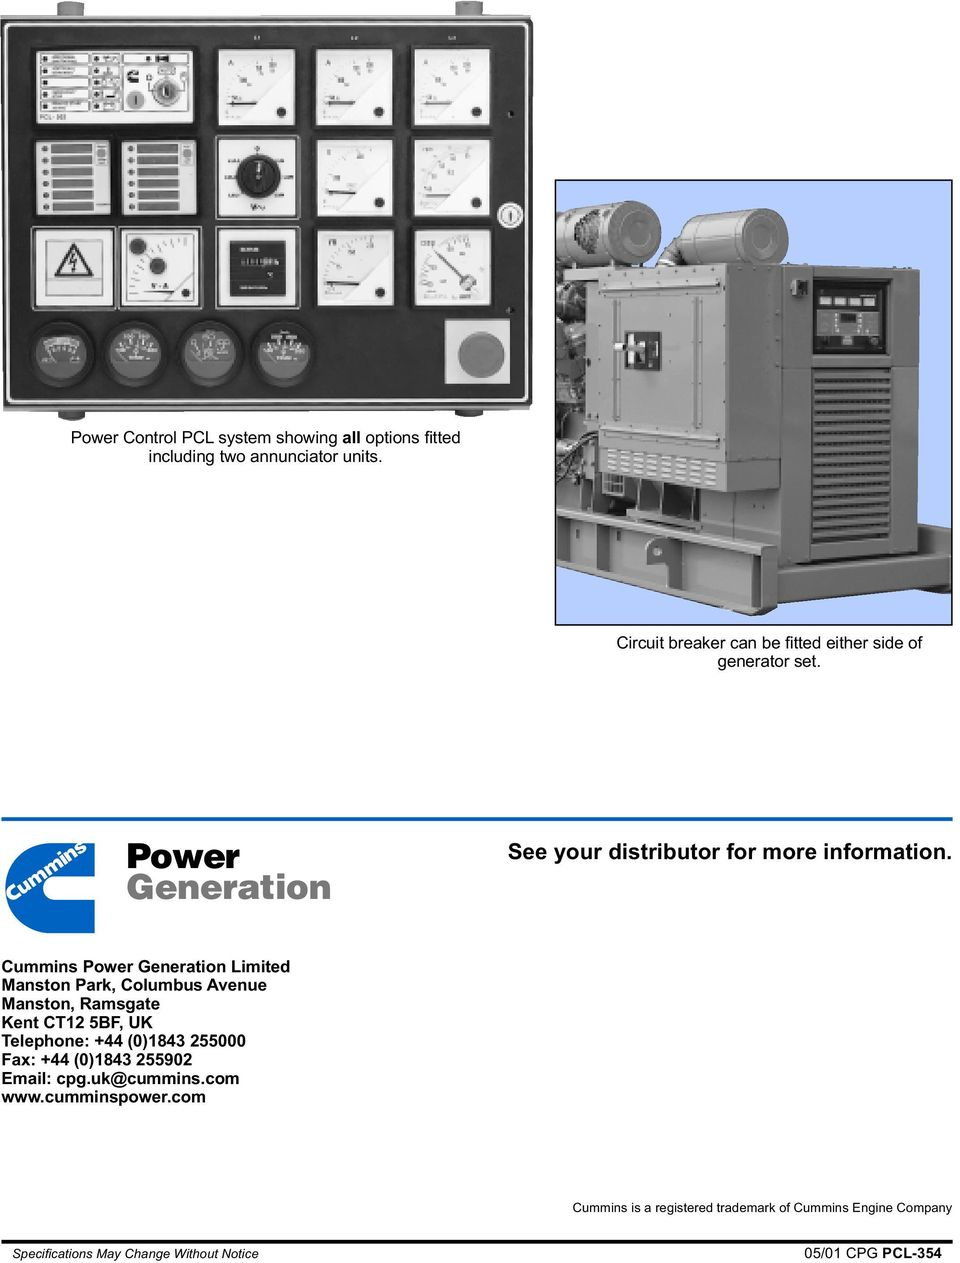 Power Generation See your distributor for more information.